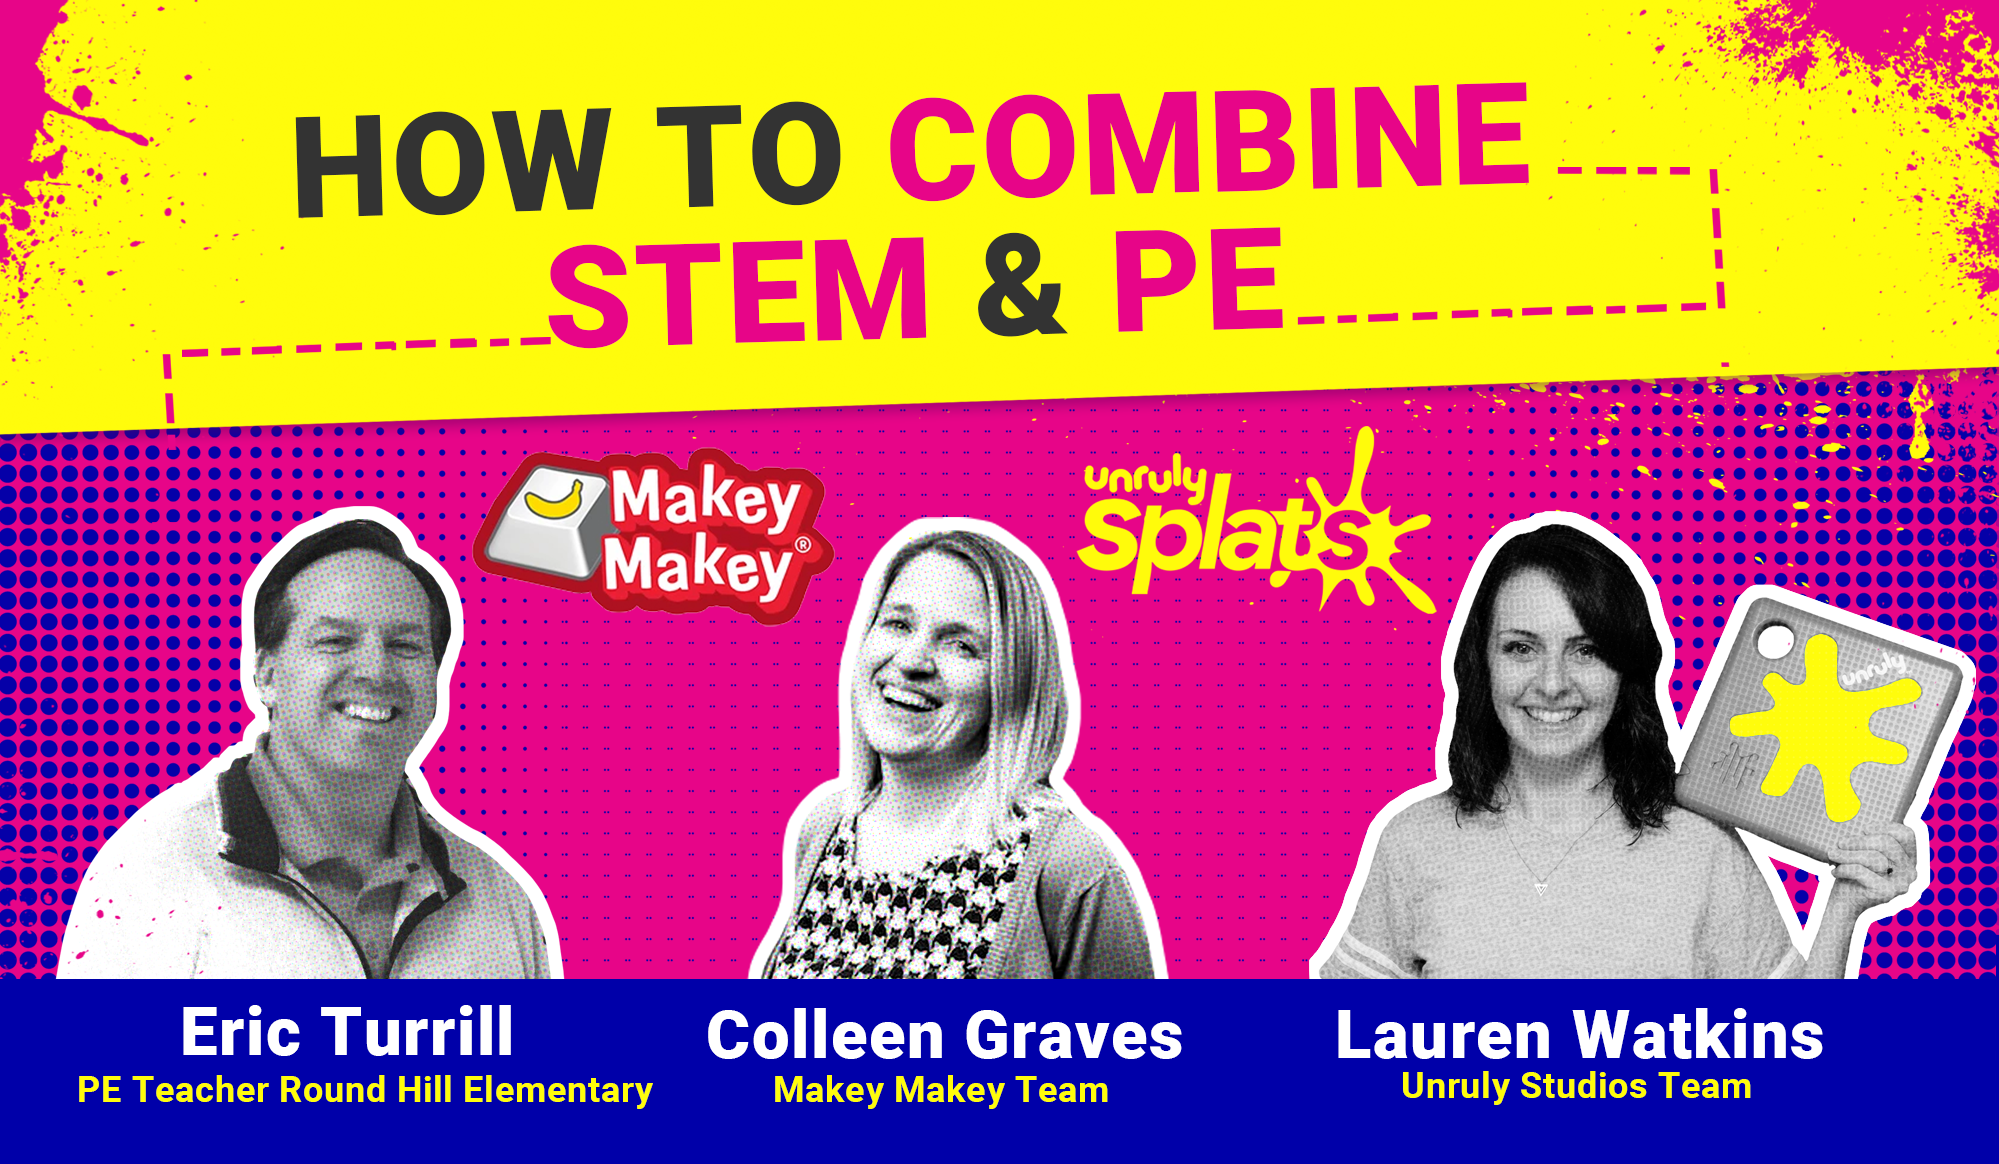 STEM Webinar - How to Combine STEM and PE